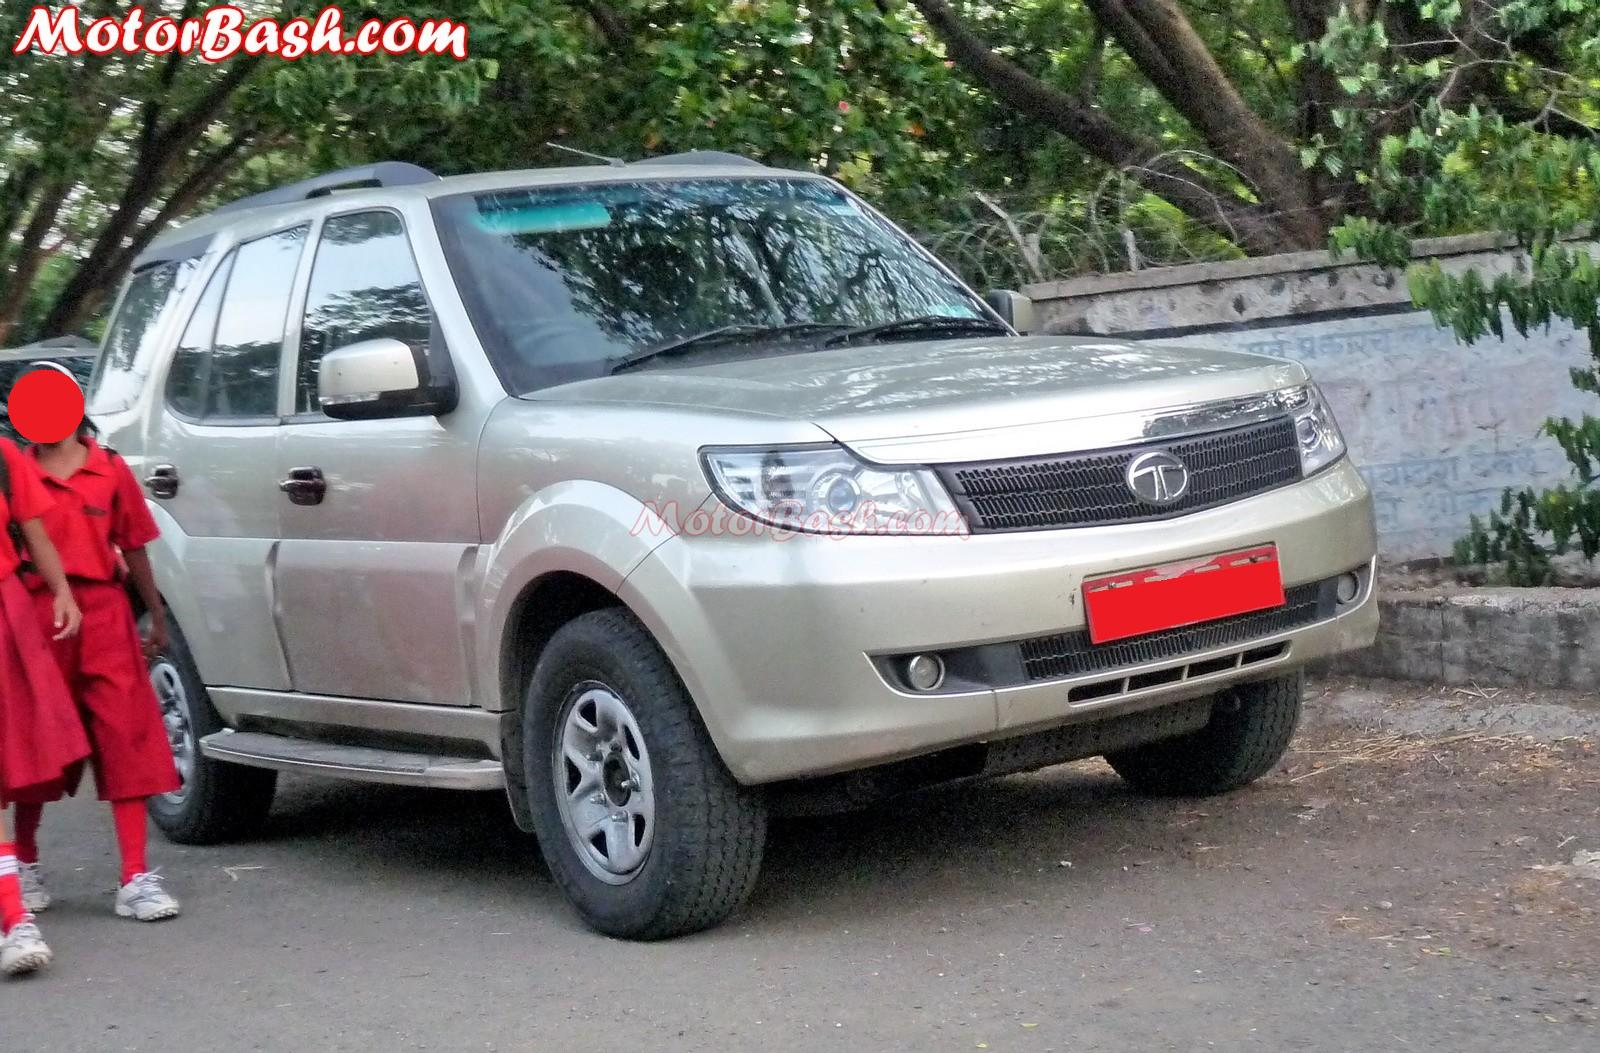 Tata Safari Storme latest pics